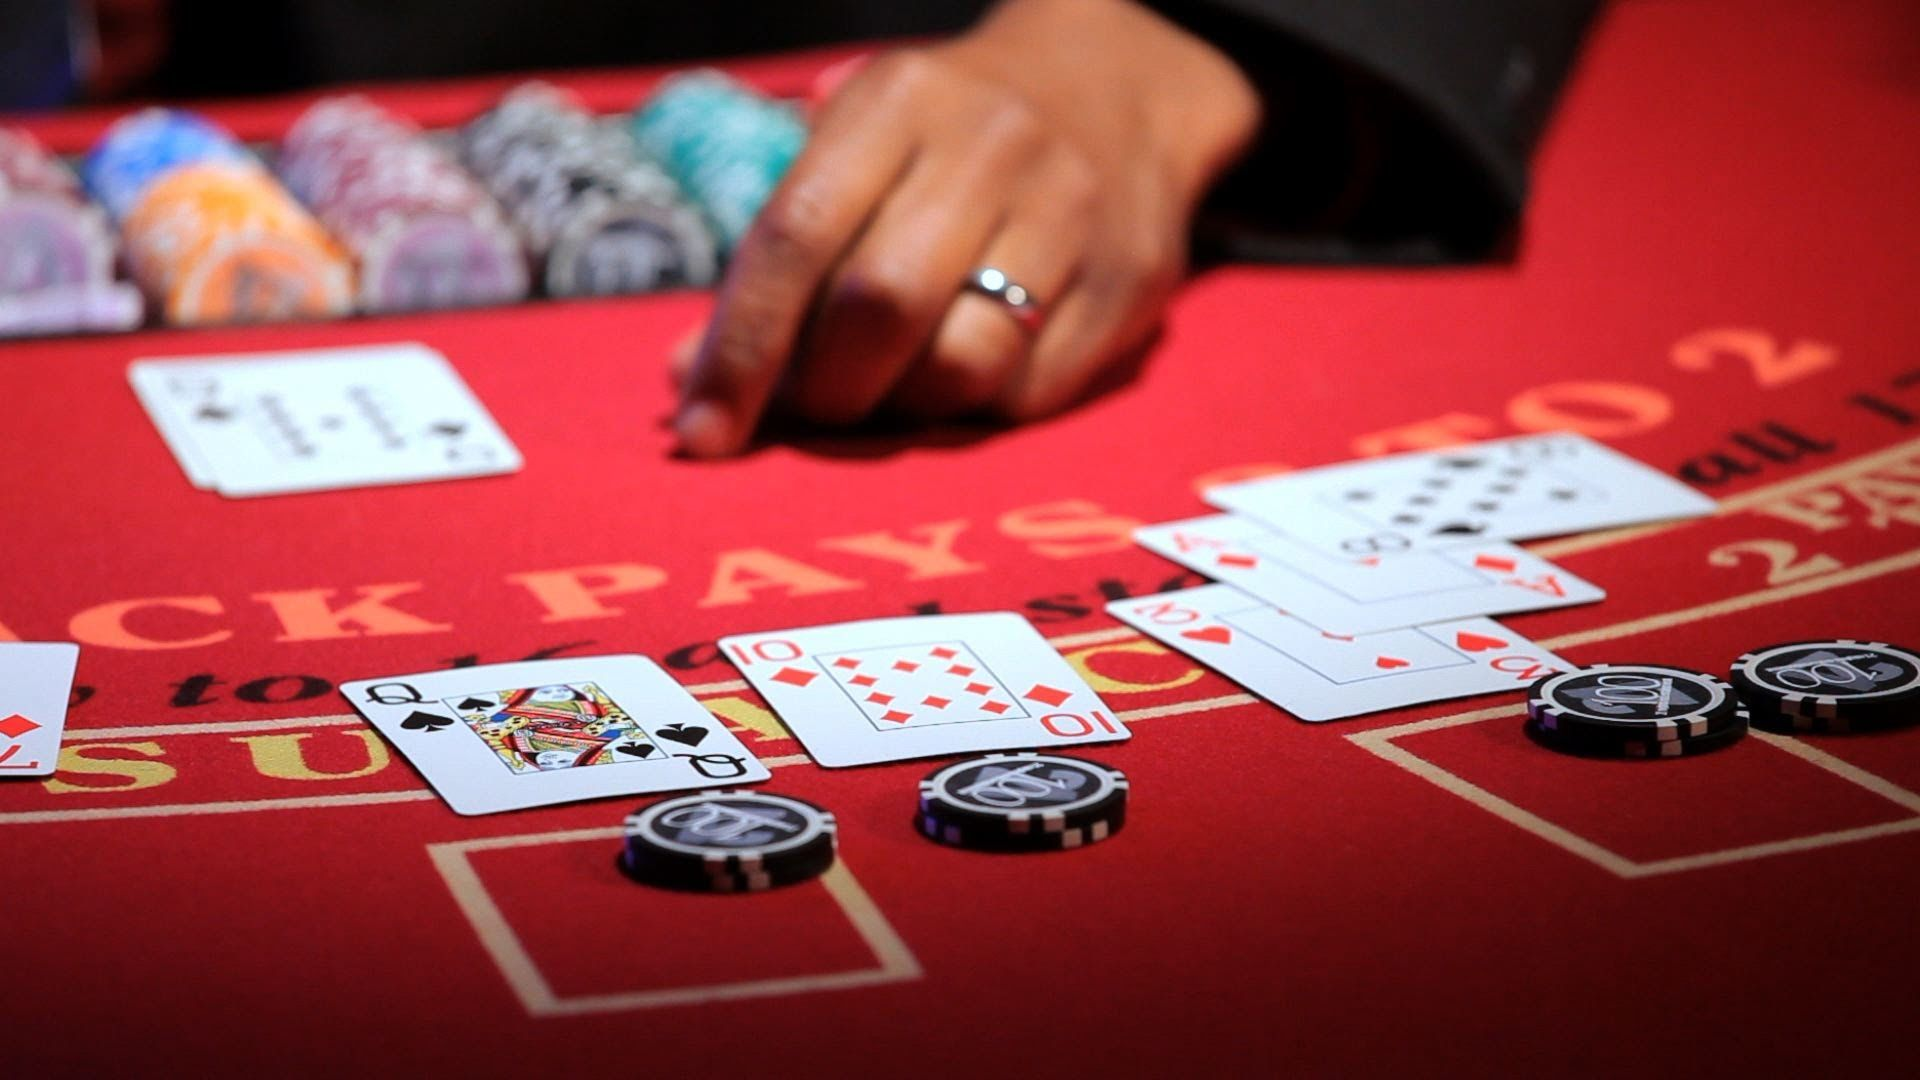 Use The Chance To Earn More Along With The Gaming Amusement